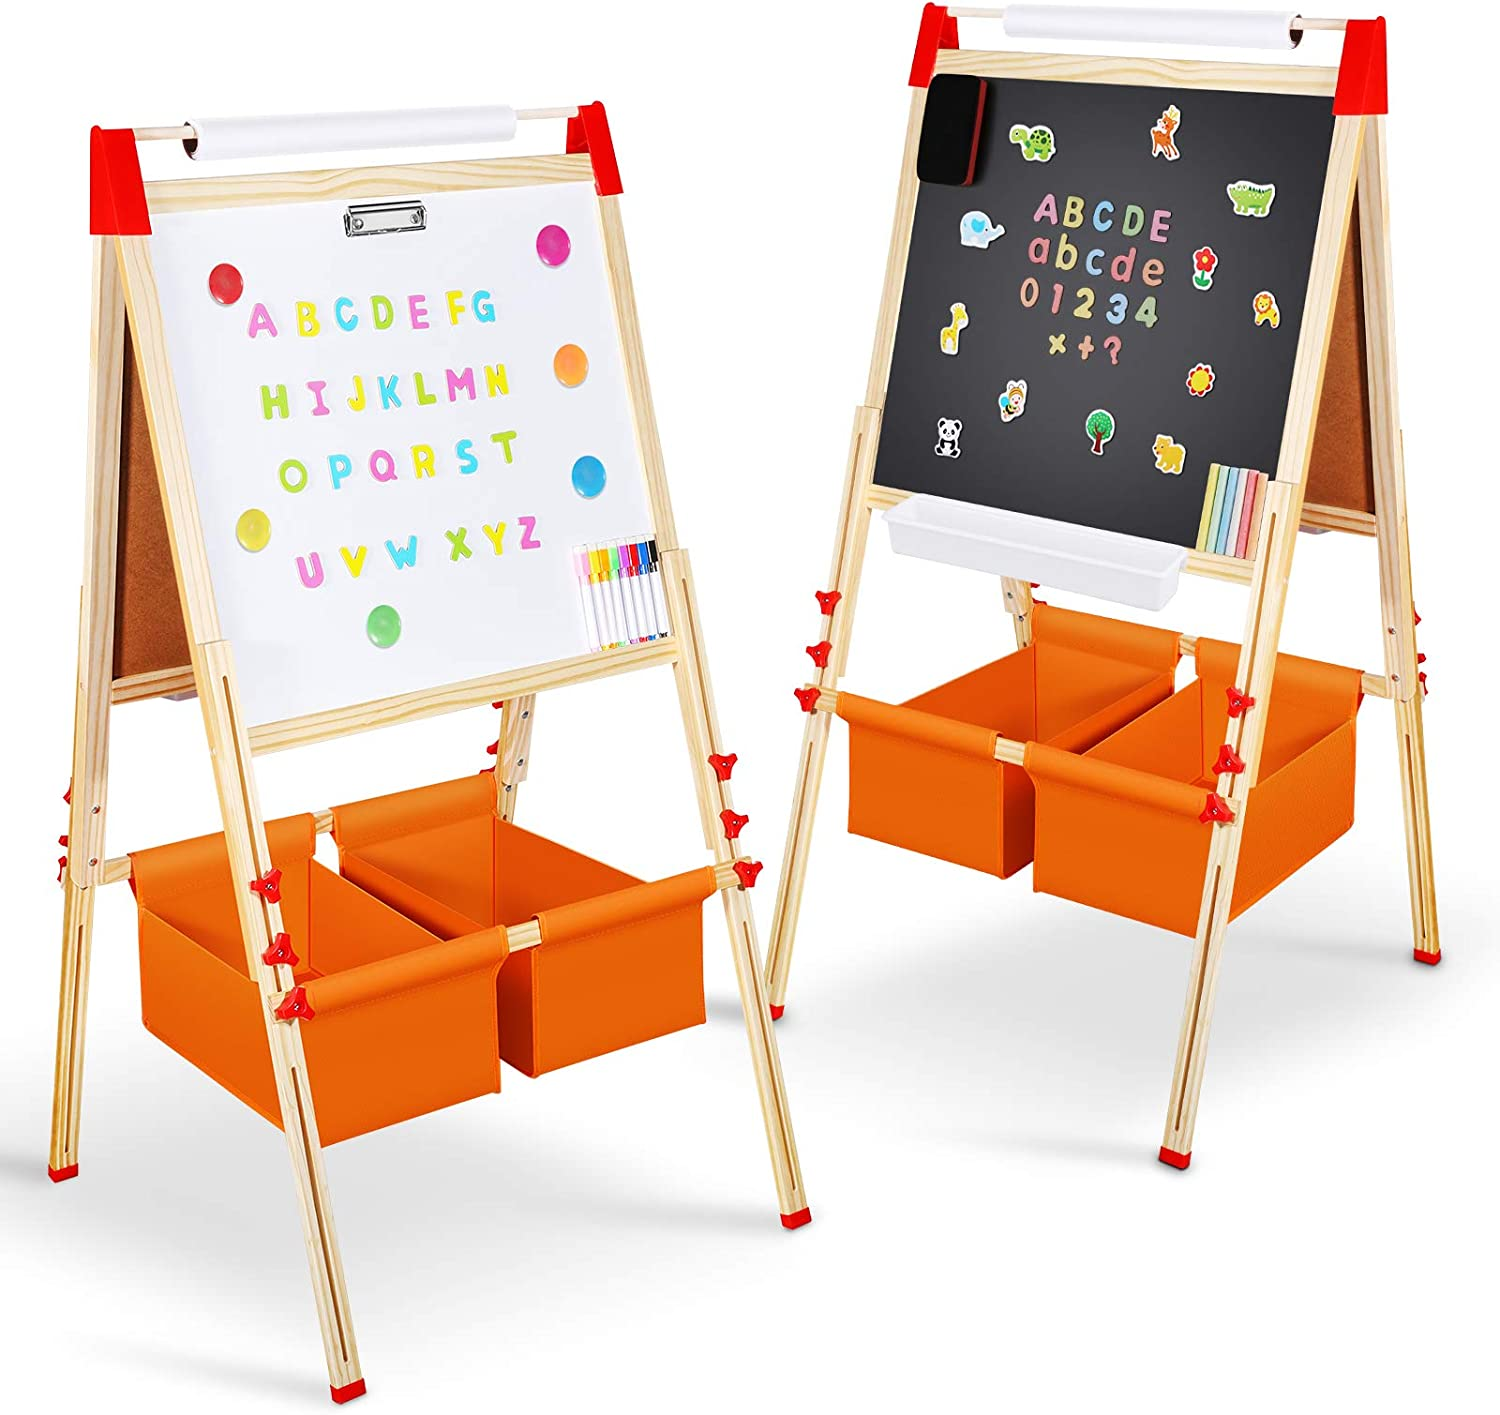 Amazon Com Magicfun Kids Art Easel Wooden Double Sided Black White Painting Board Height Adjustable Magnetic Board With Complete Accessories Chalks For Gifts Toddlers 2 7 Year Old Home Kitchen